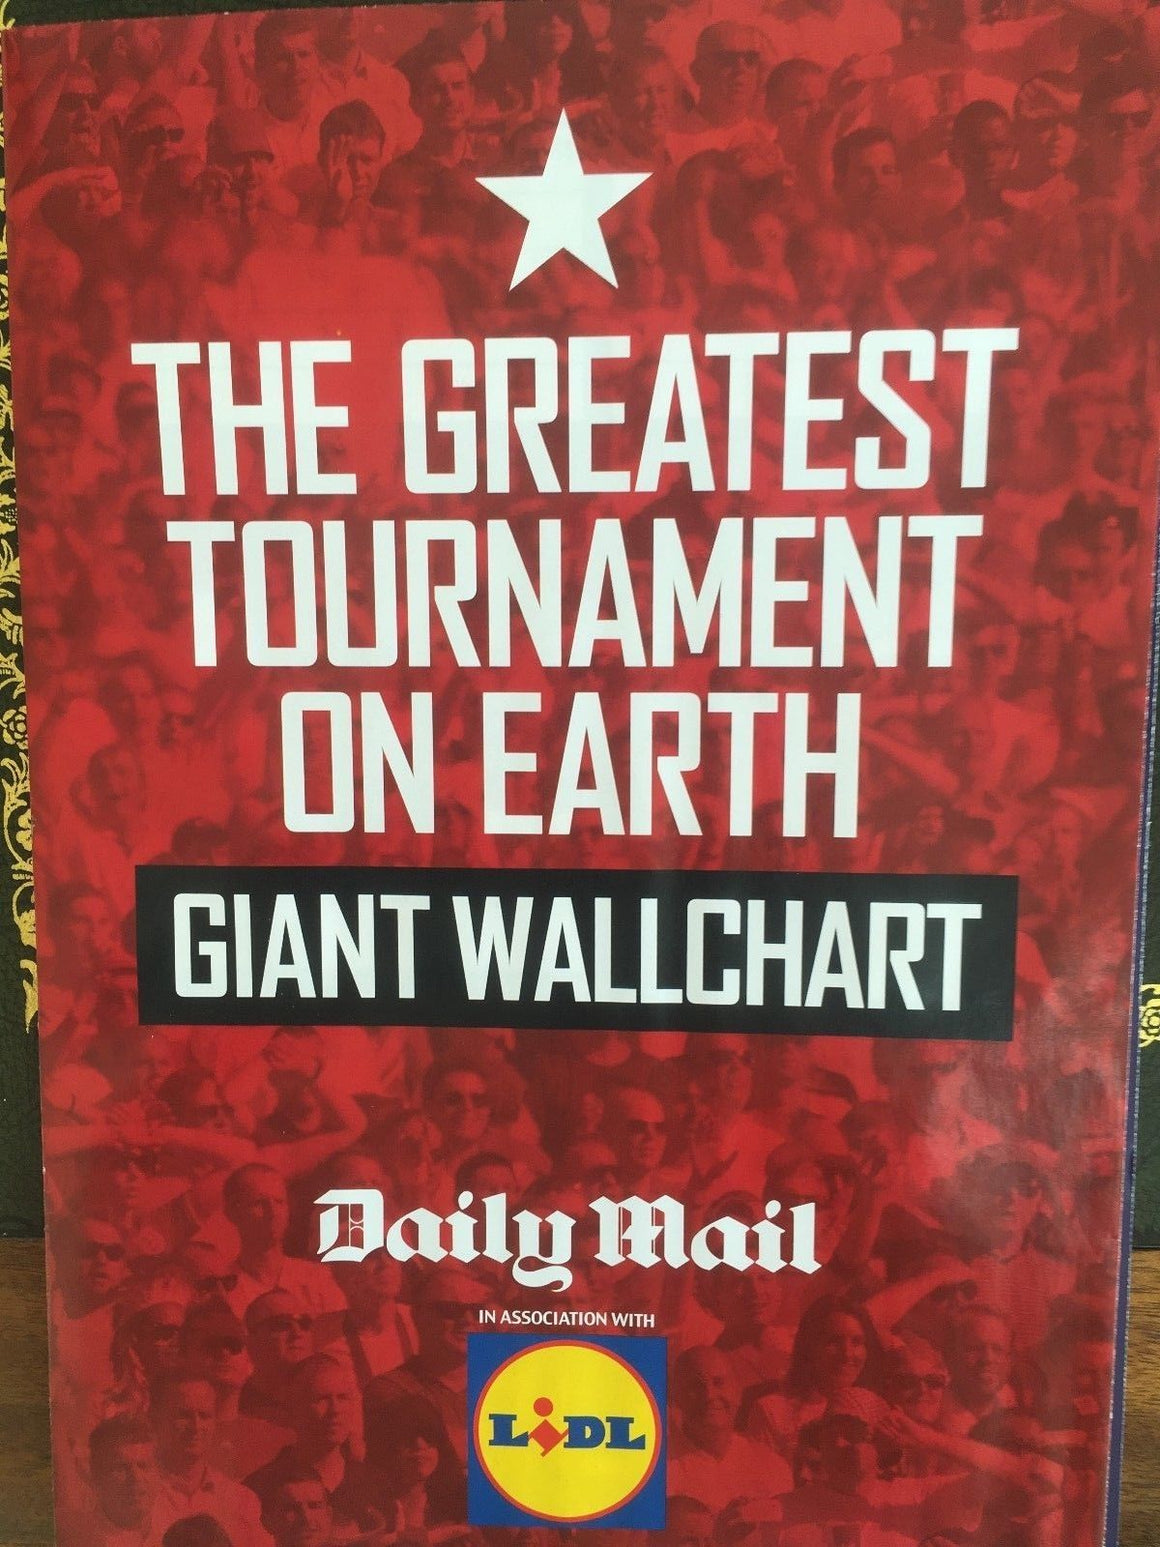 Daily Mail Football World Cup Russia 2018 Wallchart Poster Fixture Guide Planner